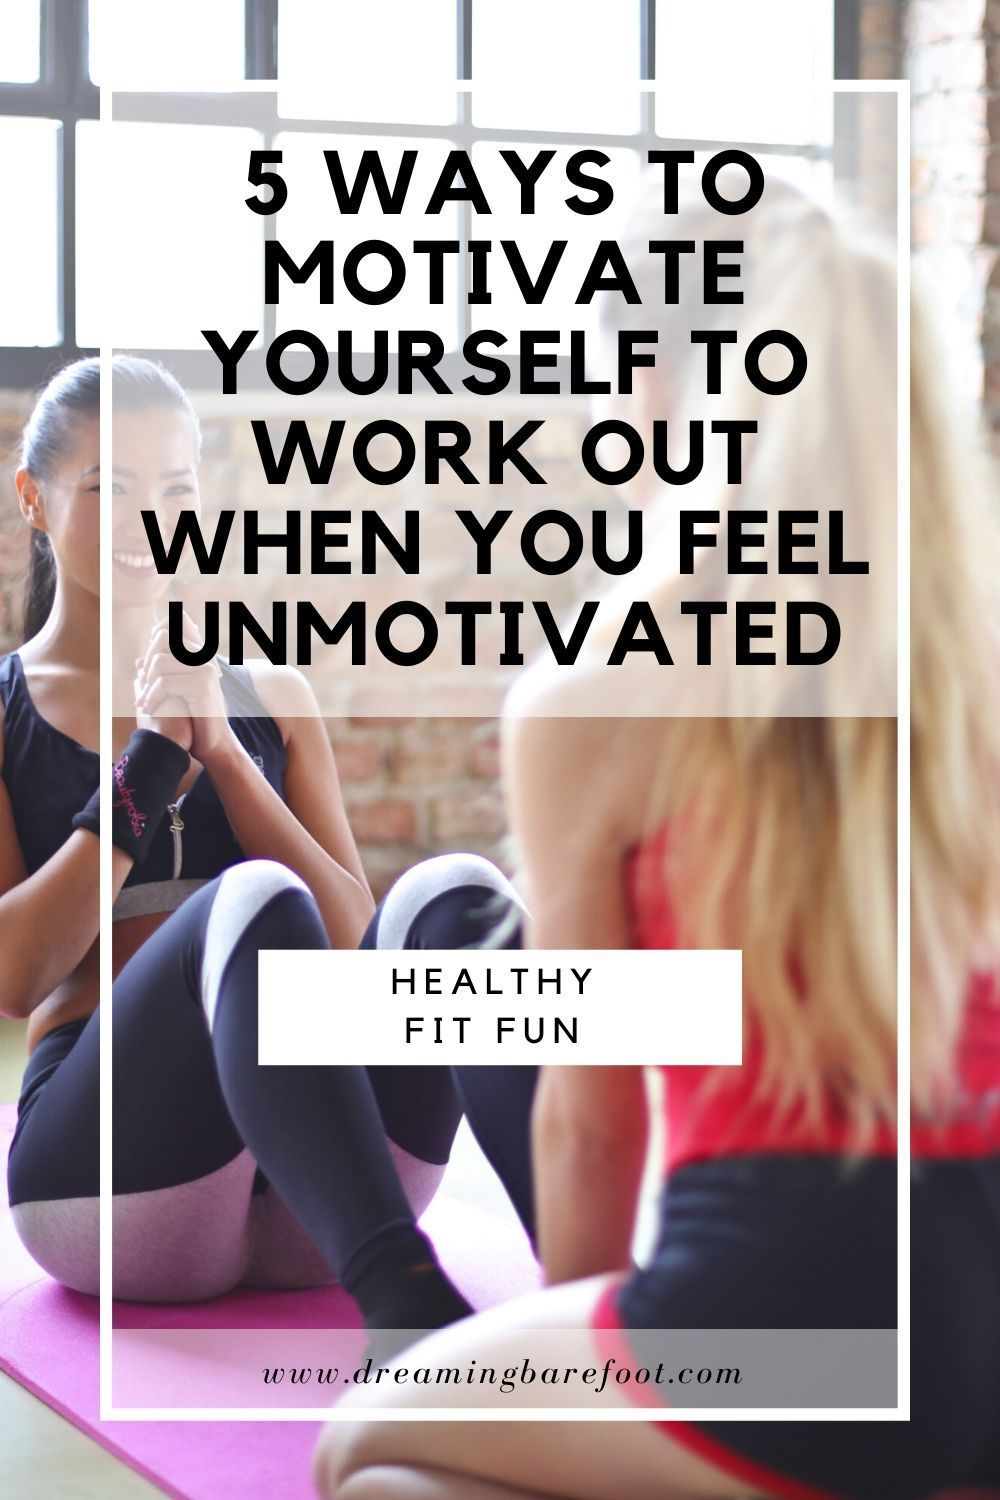 We all know what the many benefits of exercise are, but that doesn't mean that it's always easy to find the motivation to do it. If you need a little extra shove to stop procrastinating and start moving try a couple of these tips. #fitness #workout #gymtime #healthybody #wellness